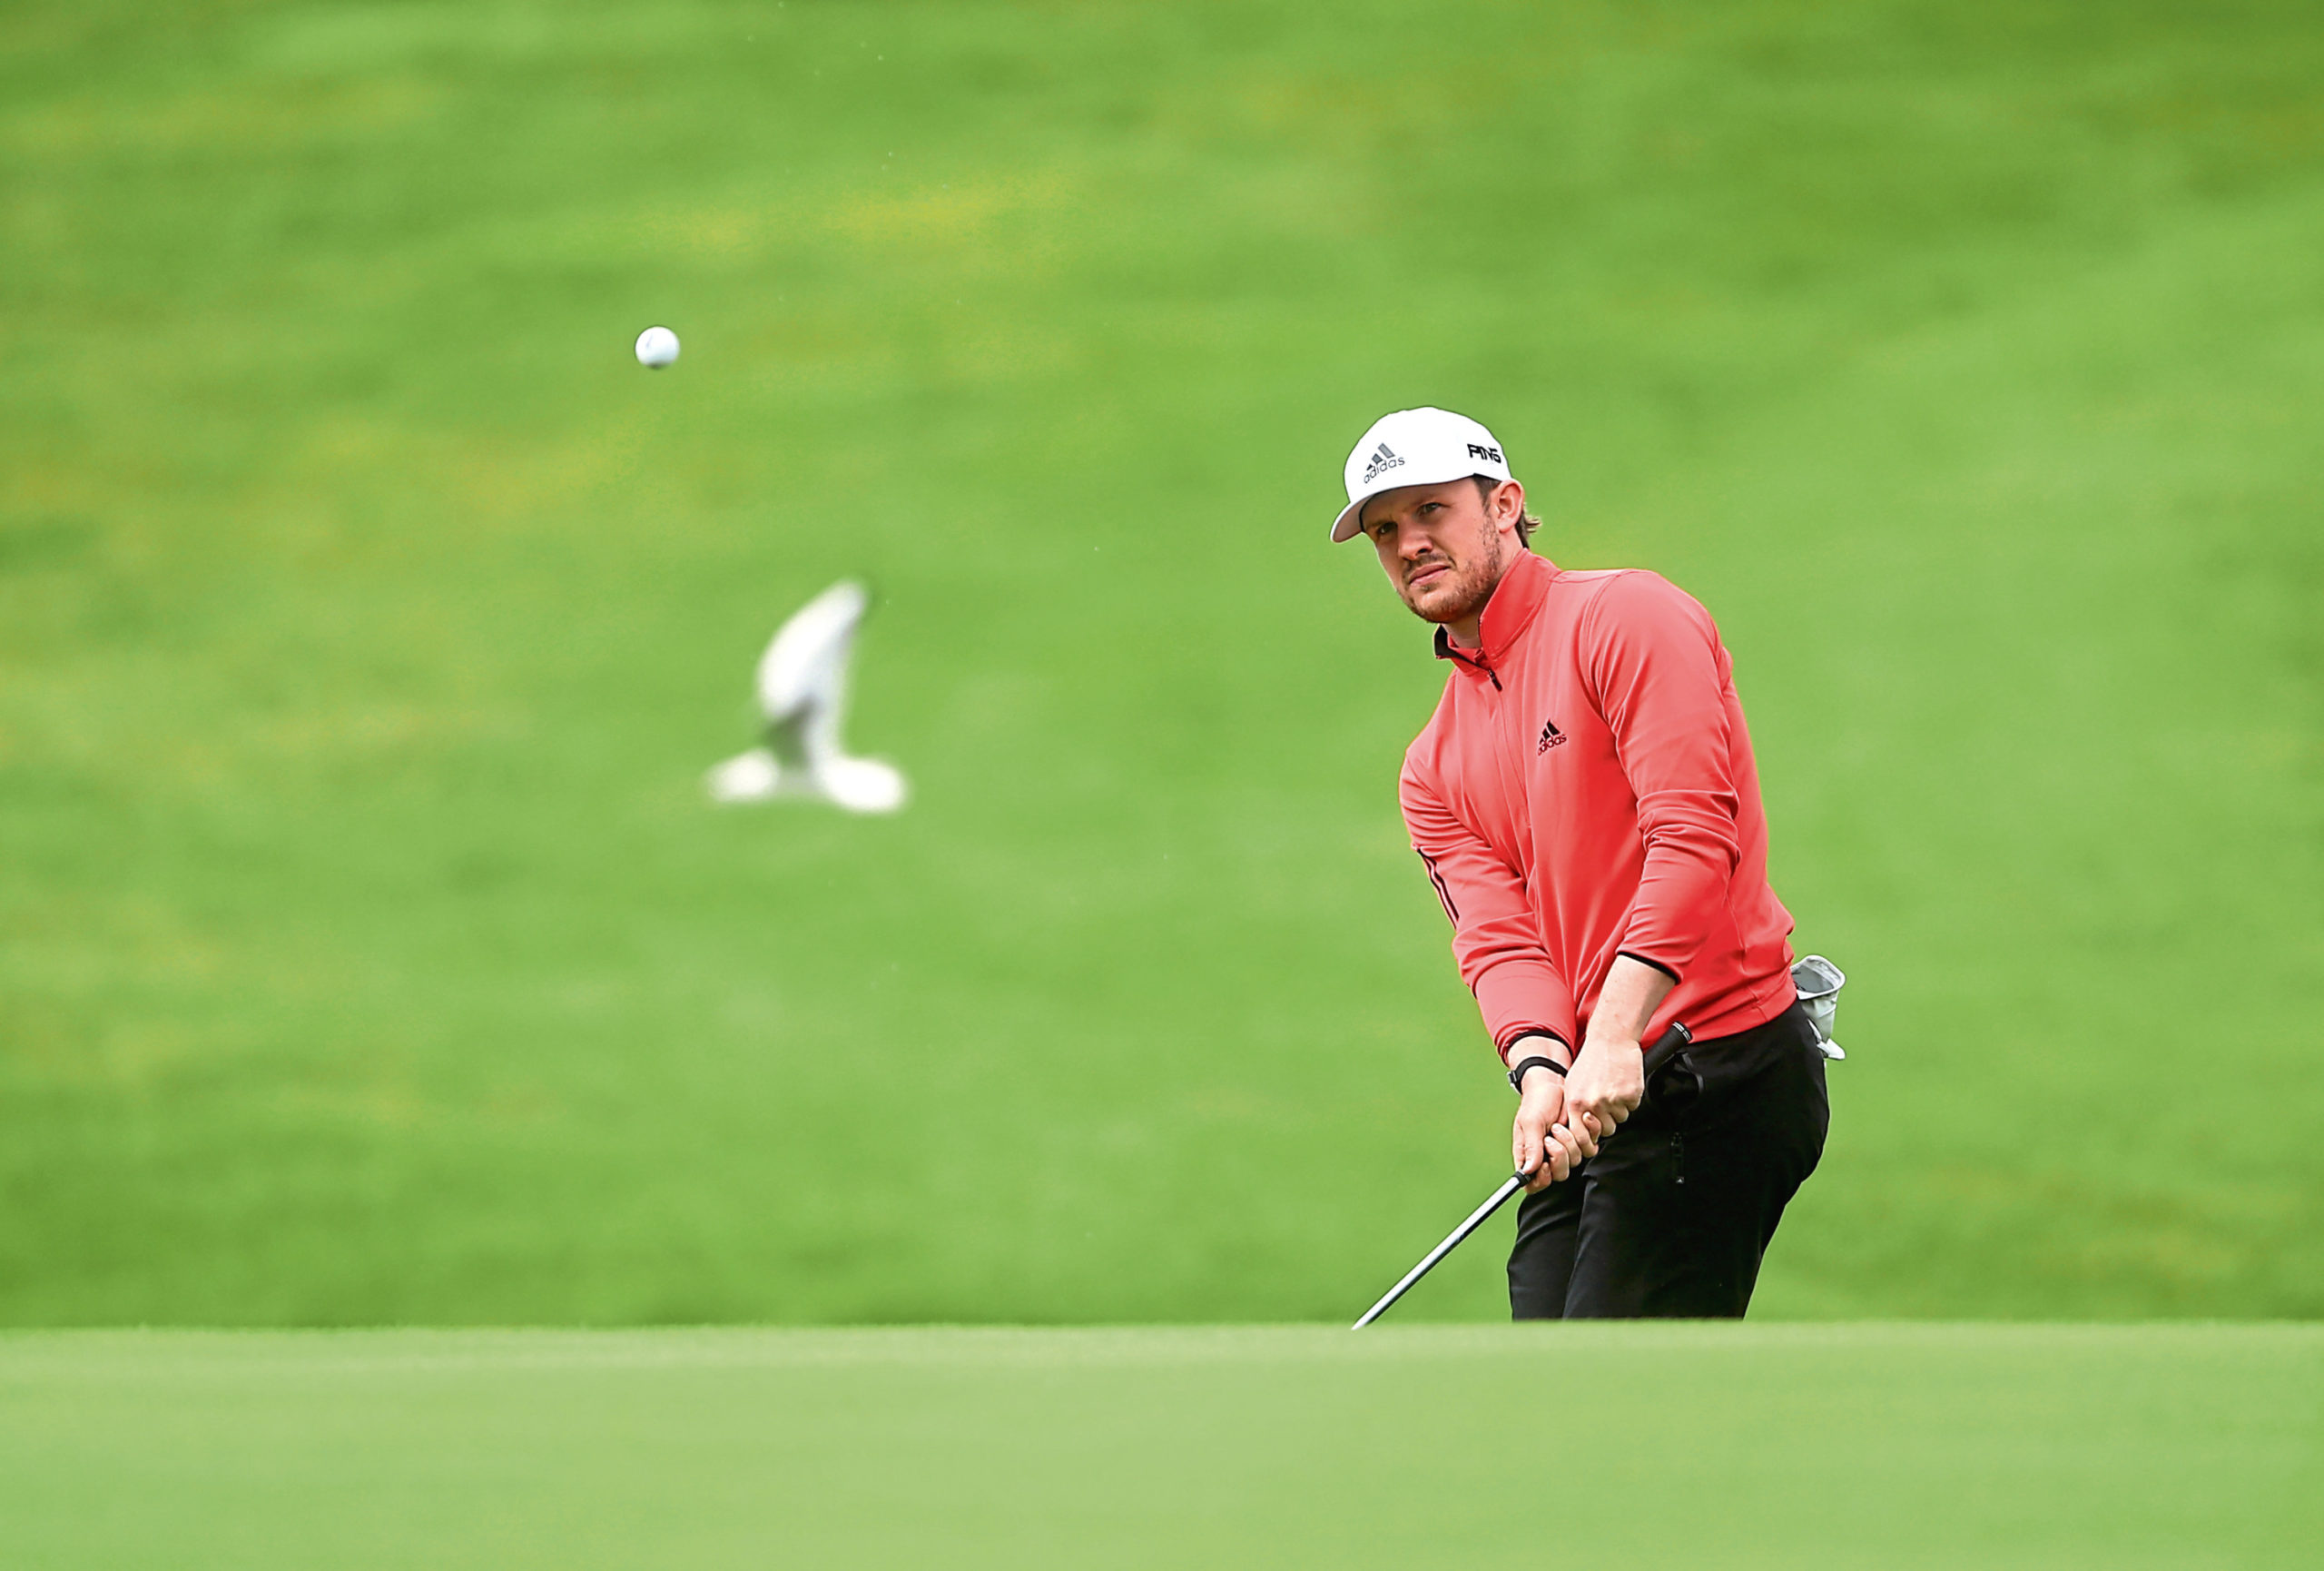 Scotland's Connor Syme during day three of the ISPS Handa Wales Open at Celtic Manor Resort.